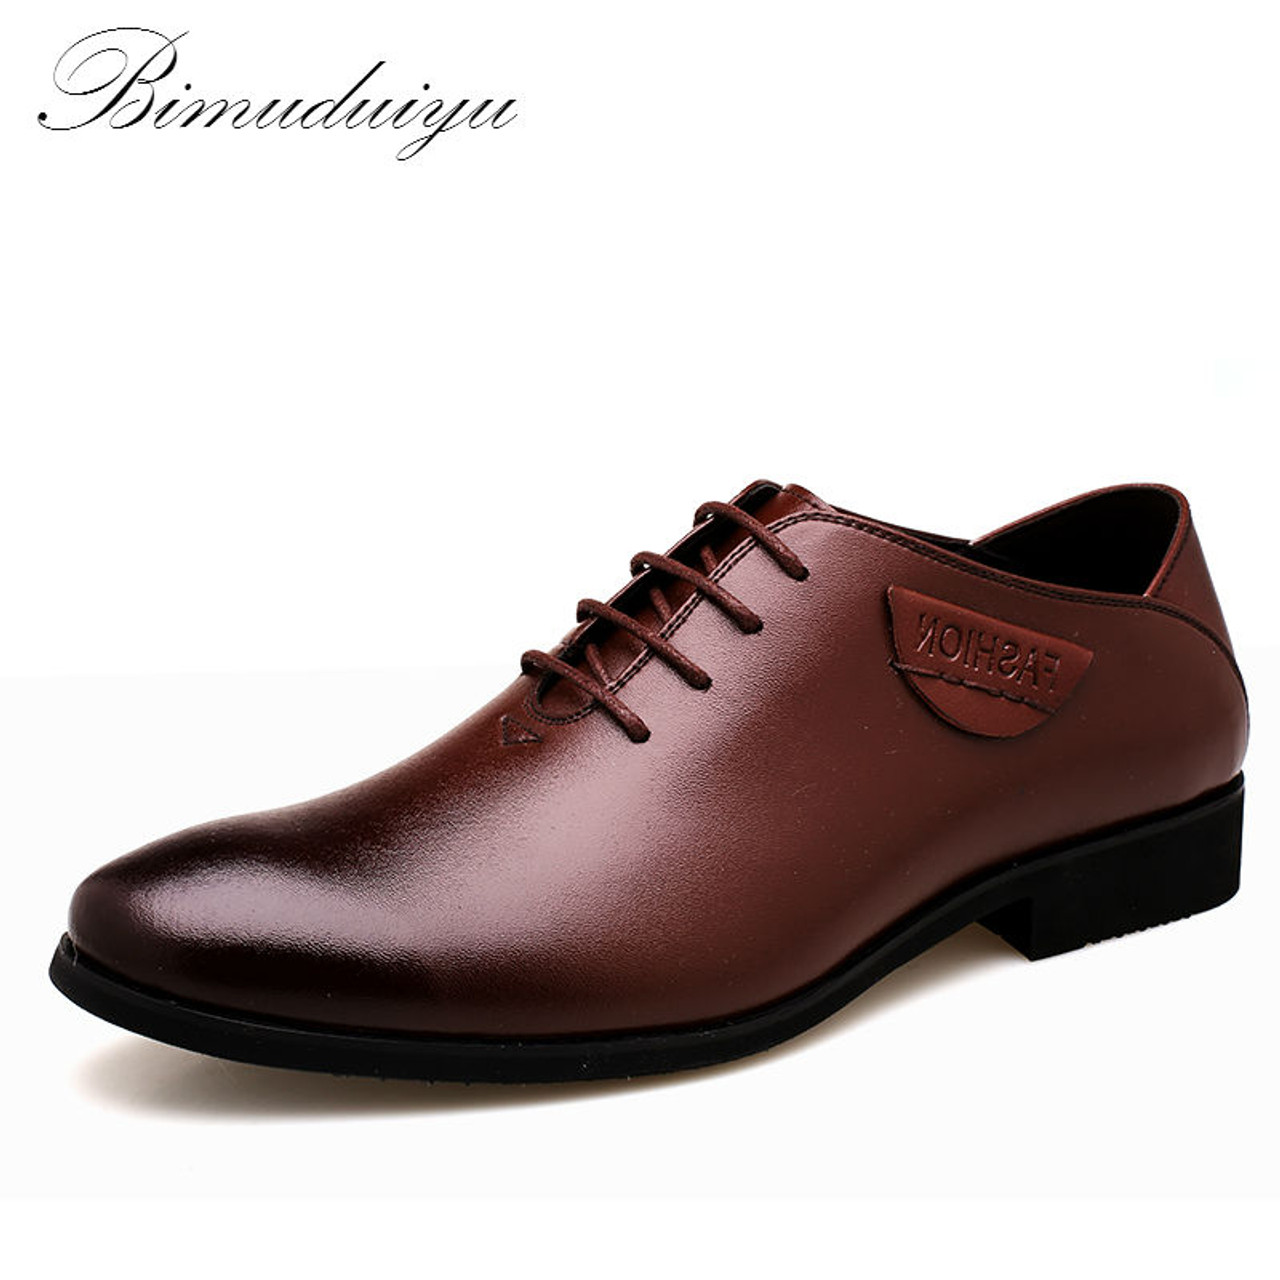 480e24983e6a Imported Hot Clearance Business Men s Casual Shoes Minimalist Design Dress  Suits Shoes City Style Leather Flat ...